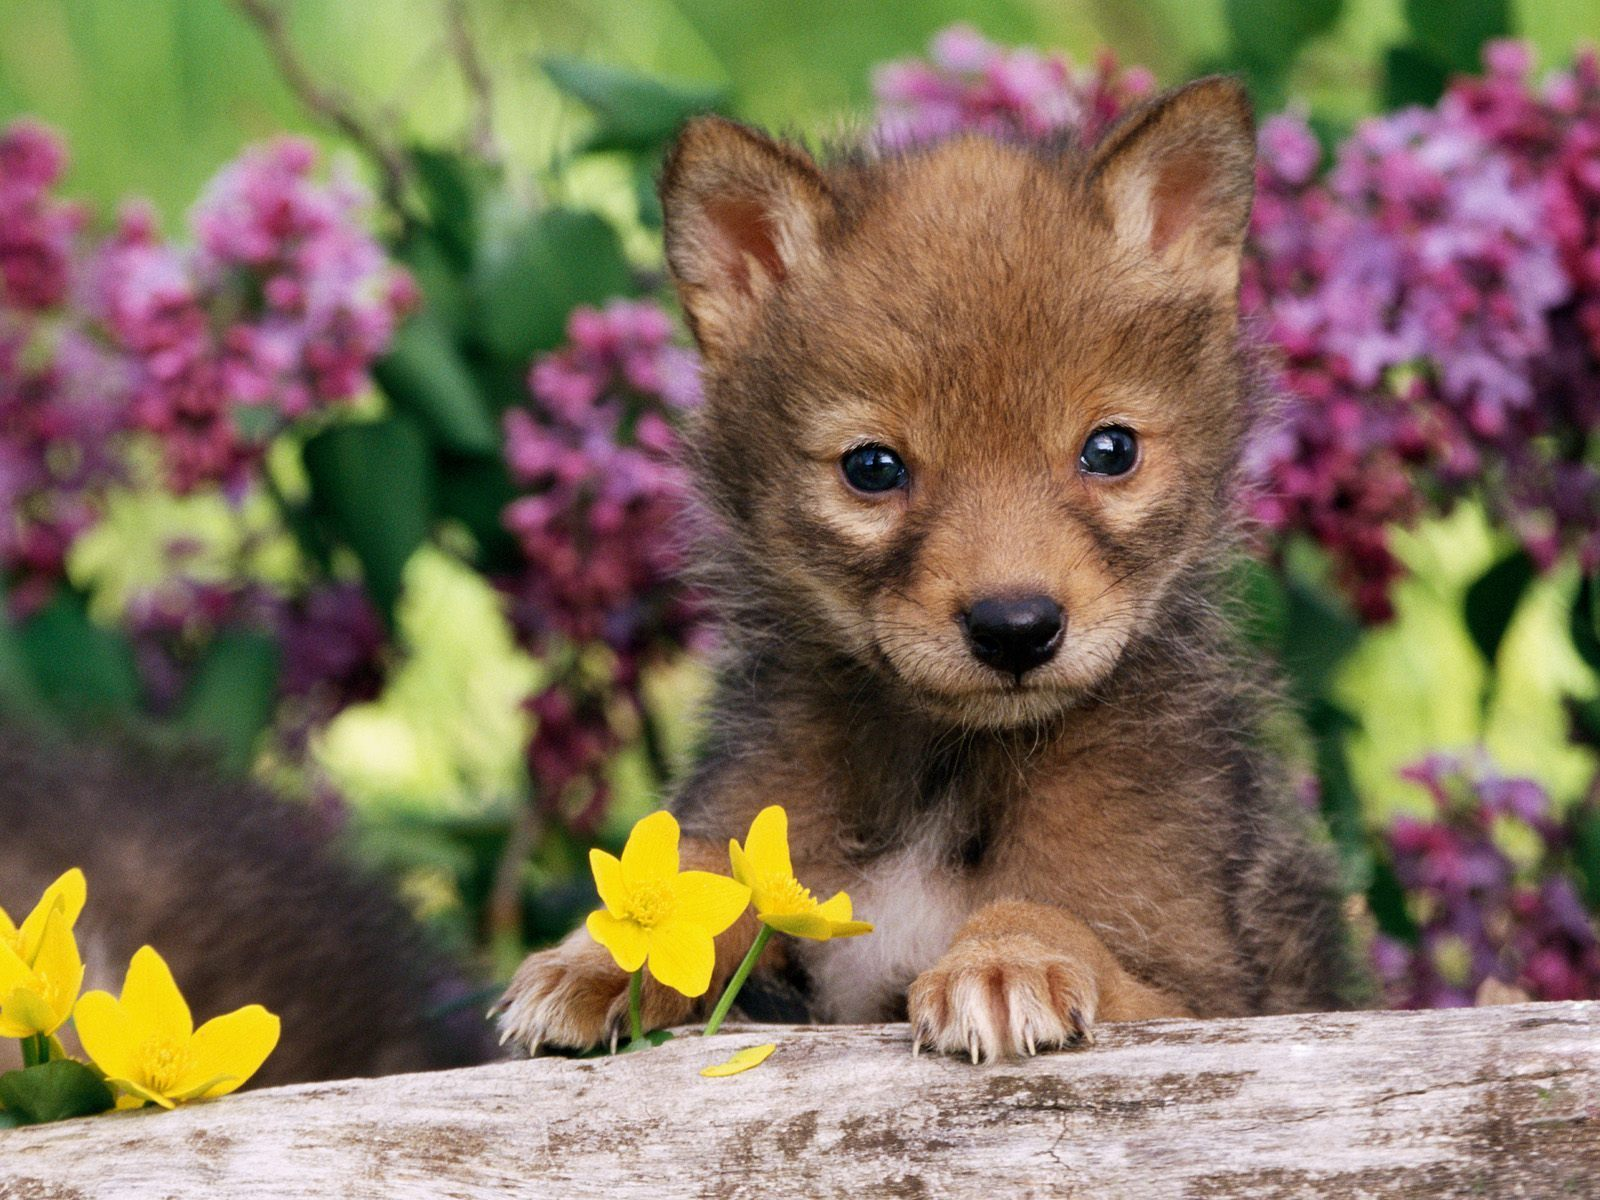 Baby Animals images coyote pup wallpaper photos 19816875 1600x1200